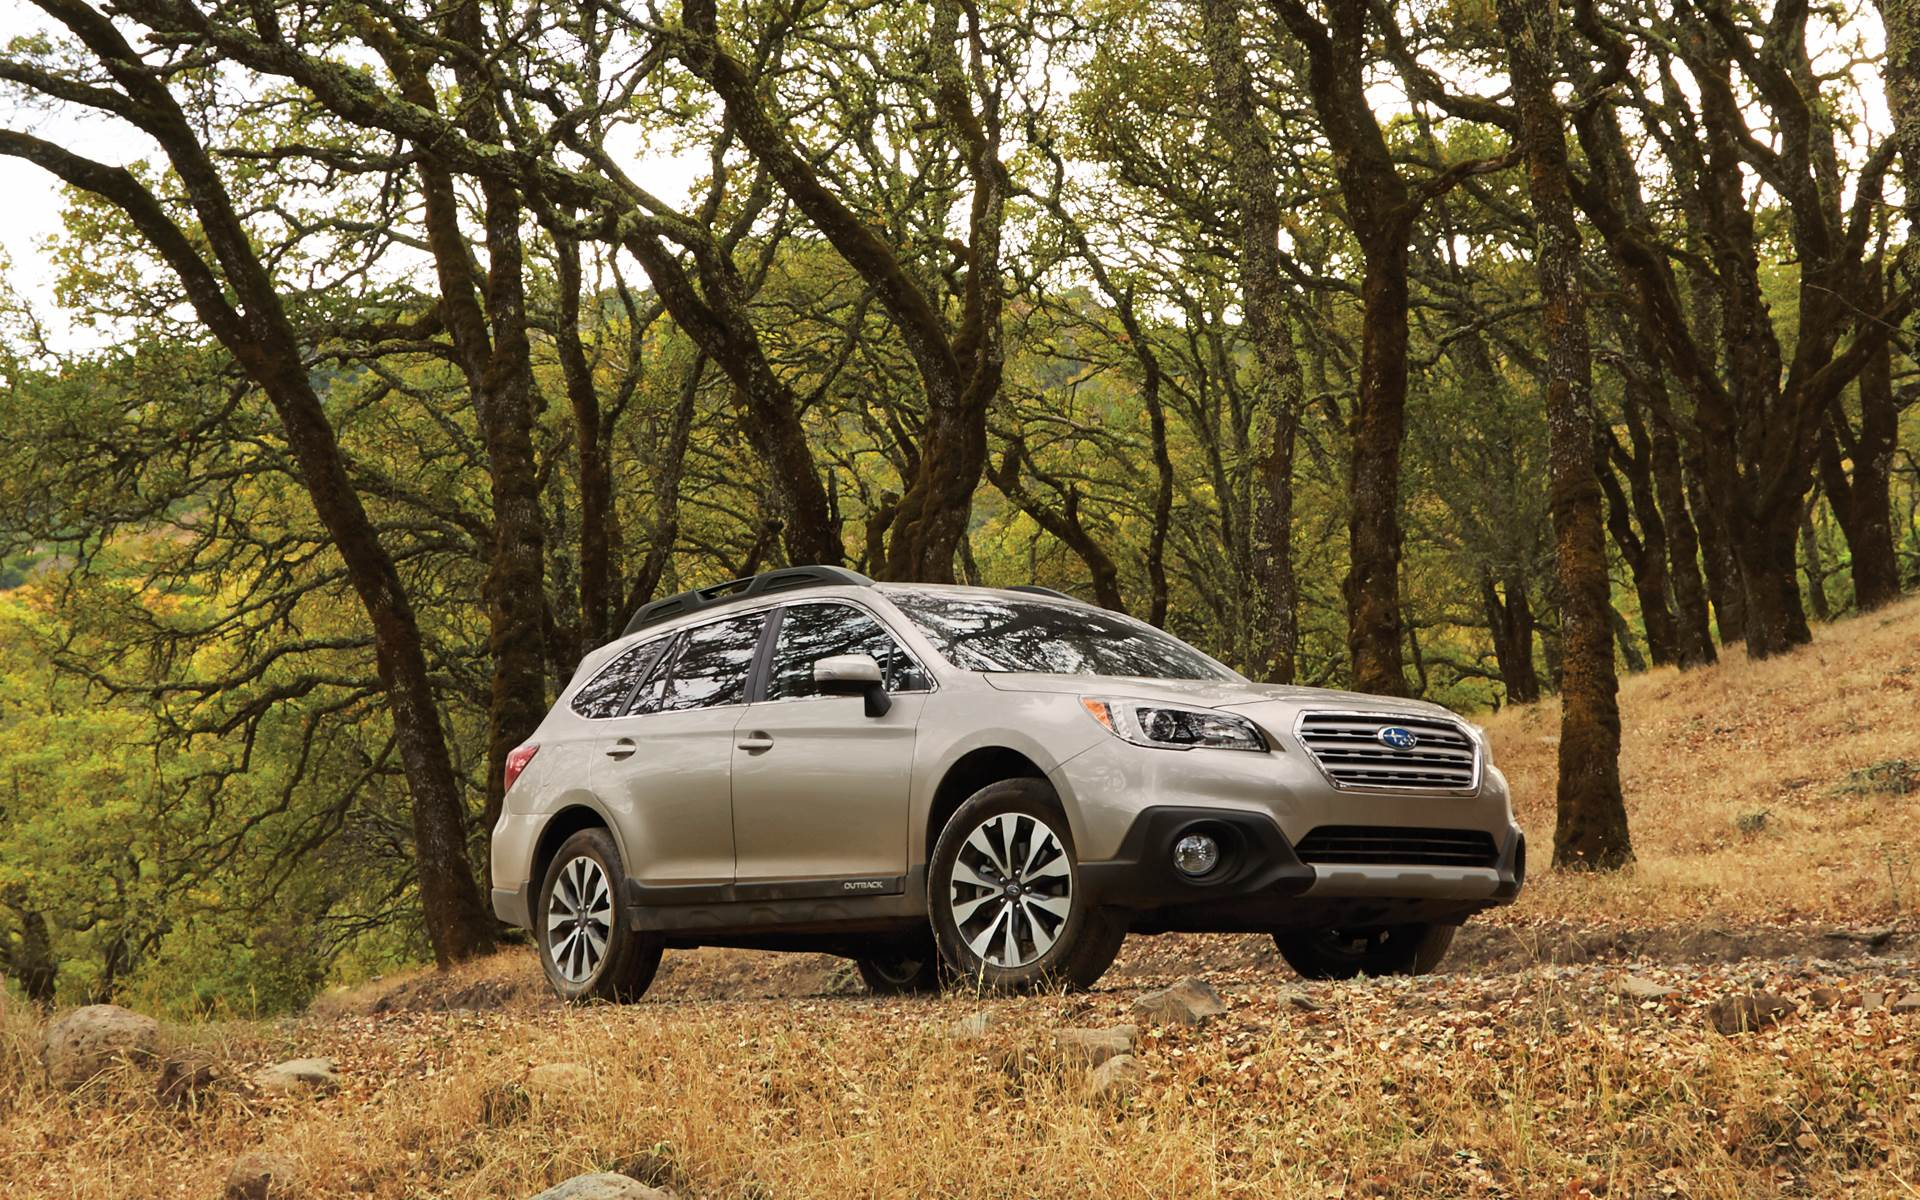 2017 Subaru Outback Limited Green 4k Hd Wallpapers Turbo Used For Sale Near West Chester Pa Exton Buy